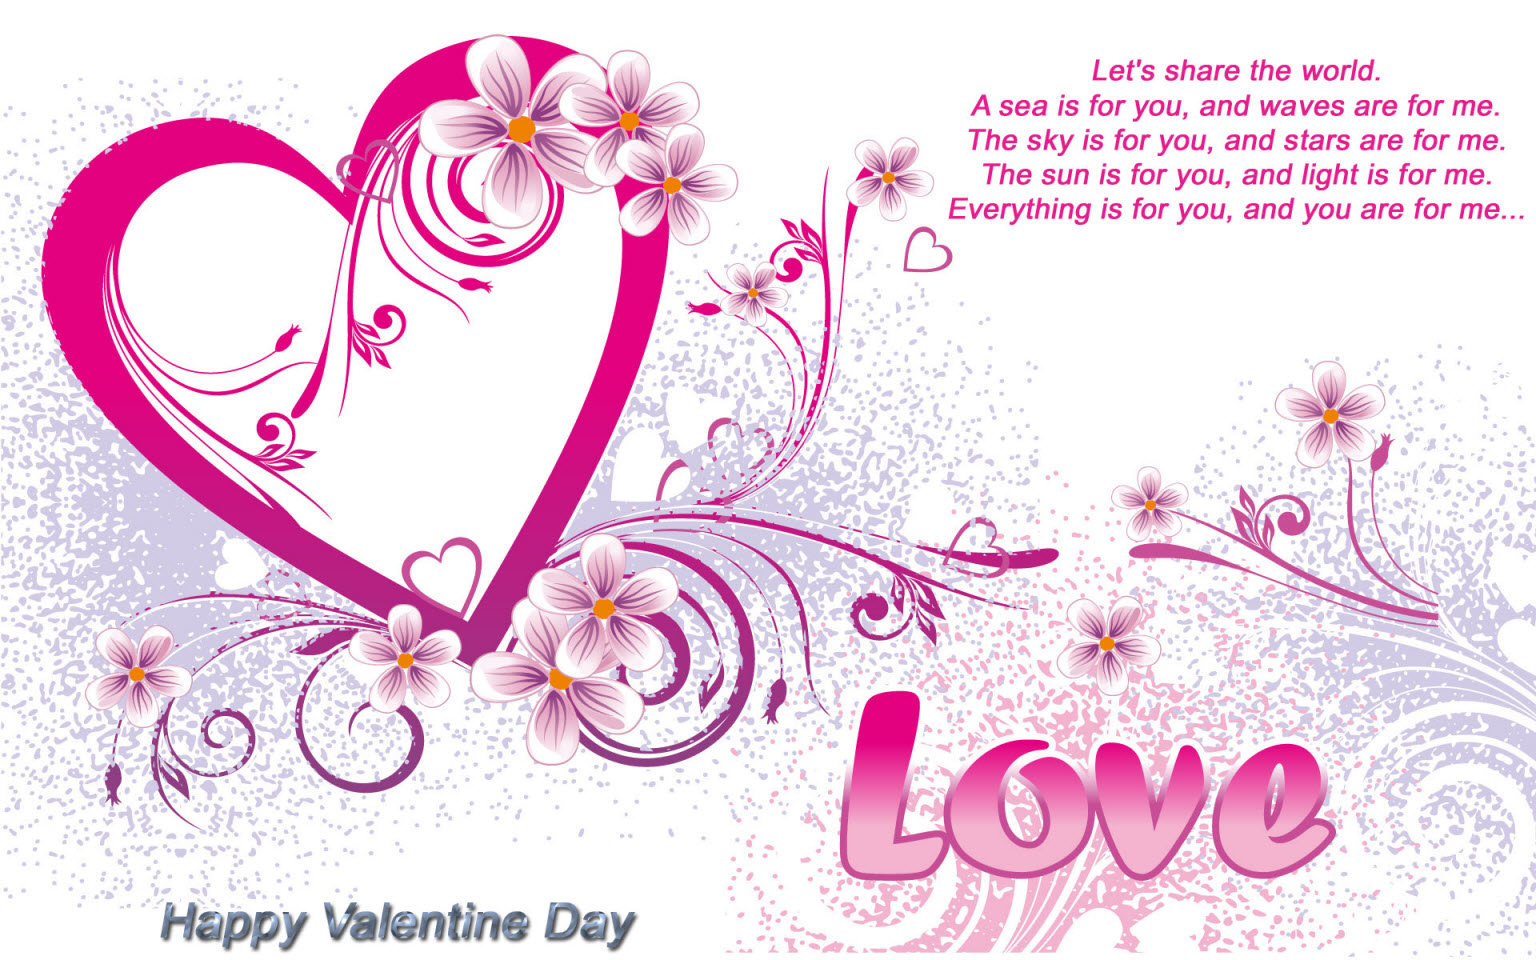 Valentines Day Love Letters For Him Gallery  Letter Examples Ideas